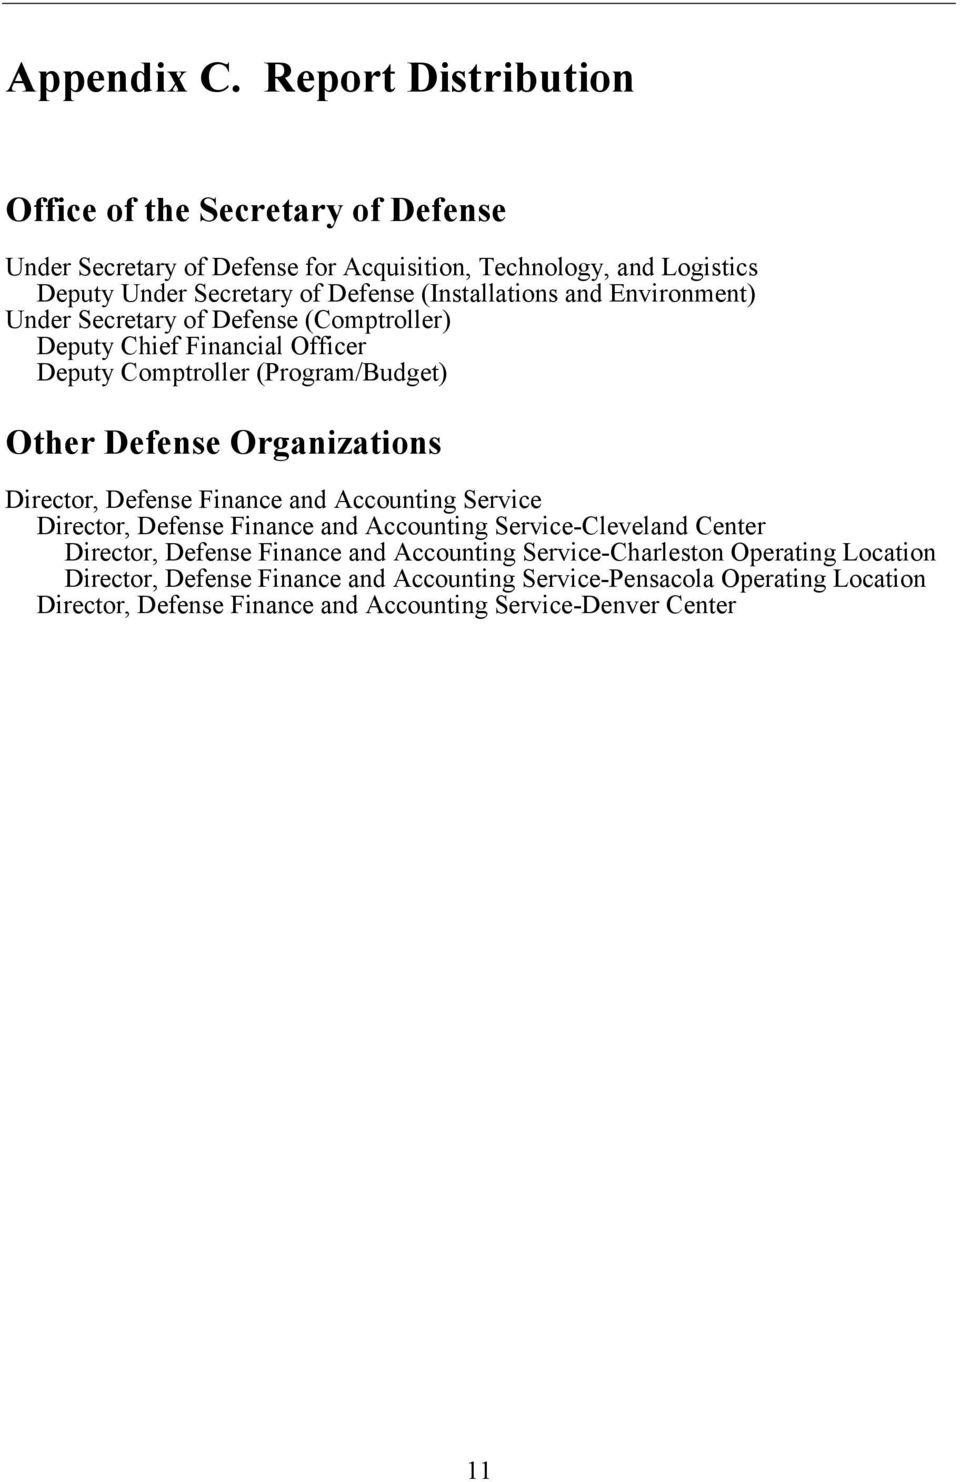 (Installations and Environment) Under Secretary of Defense (Comptroller) Deputy Chief Financial Officer Deputy Comptroller (Program/Budget) Other Defense Organizations